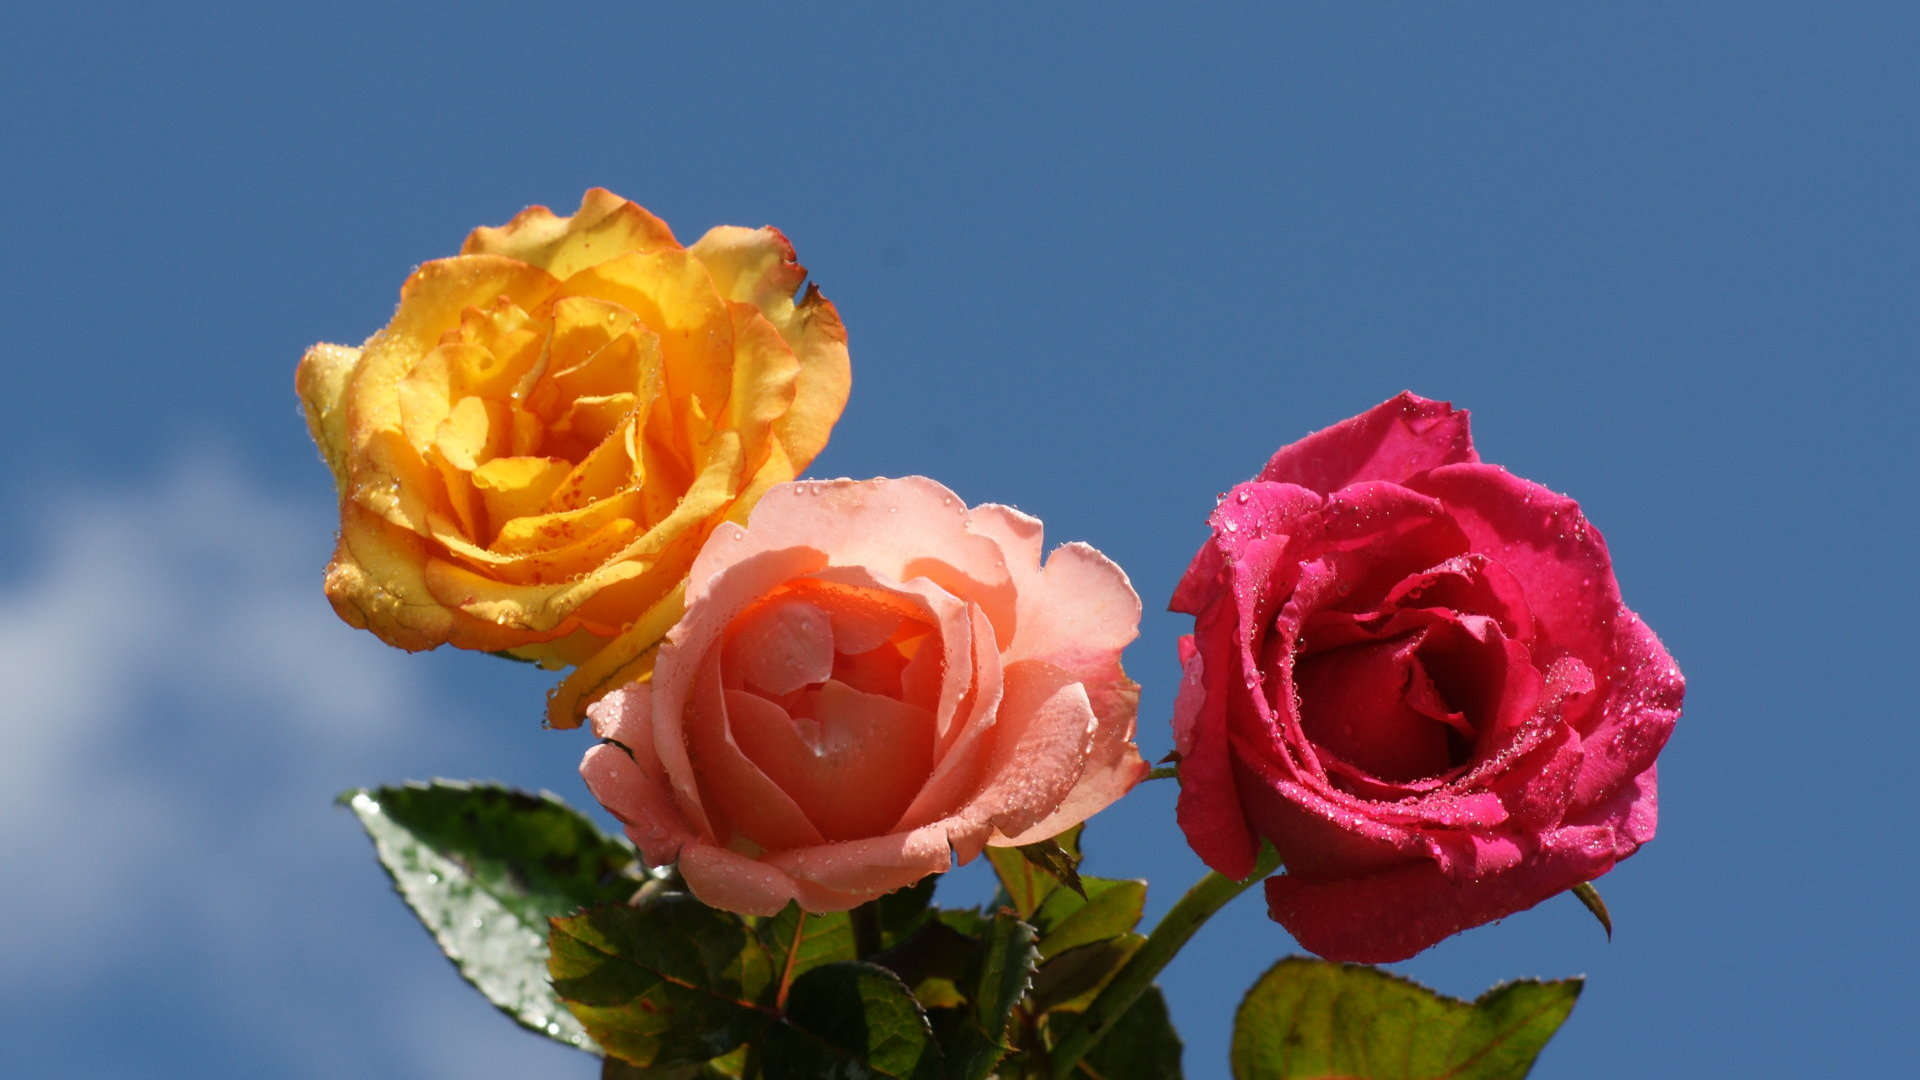 http://www.allabouthappylife.com/wallpaper/widescreen/roses/colorful-heavenly-roses-dsc05683.jpg